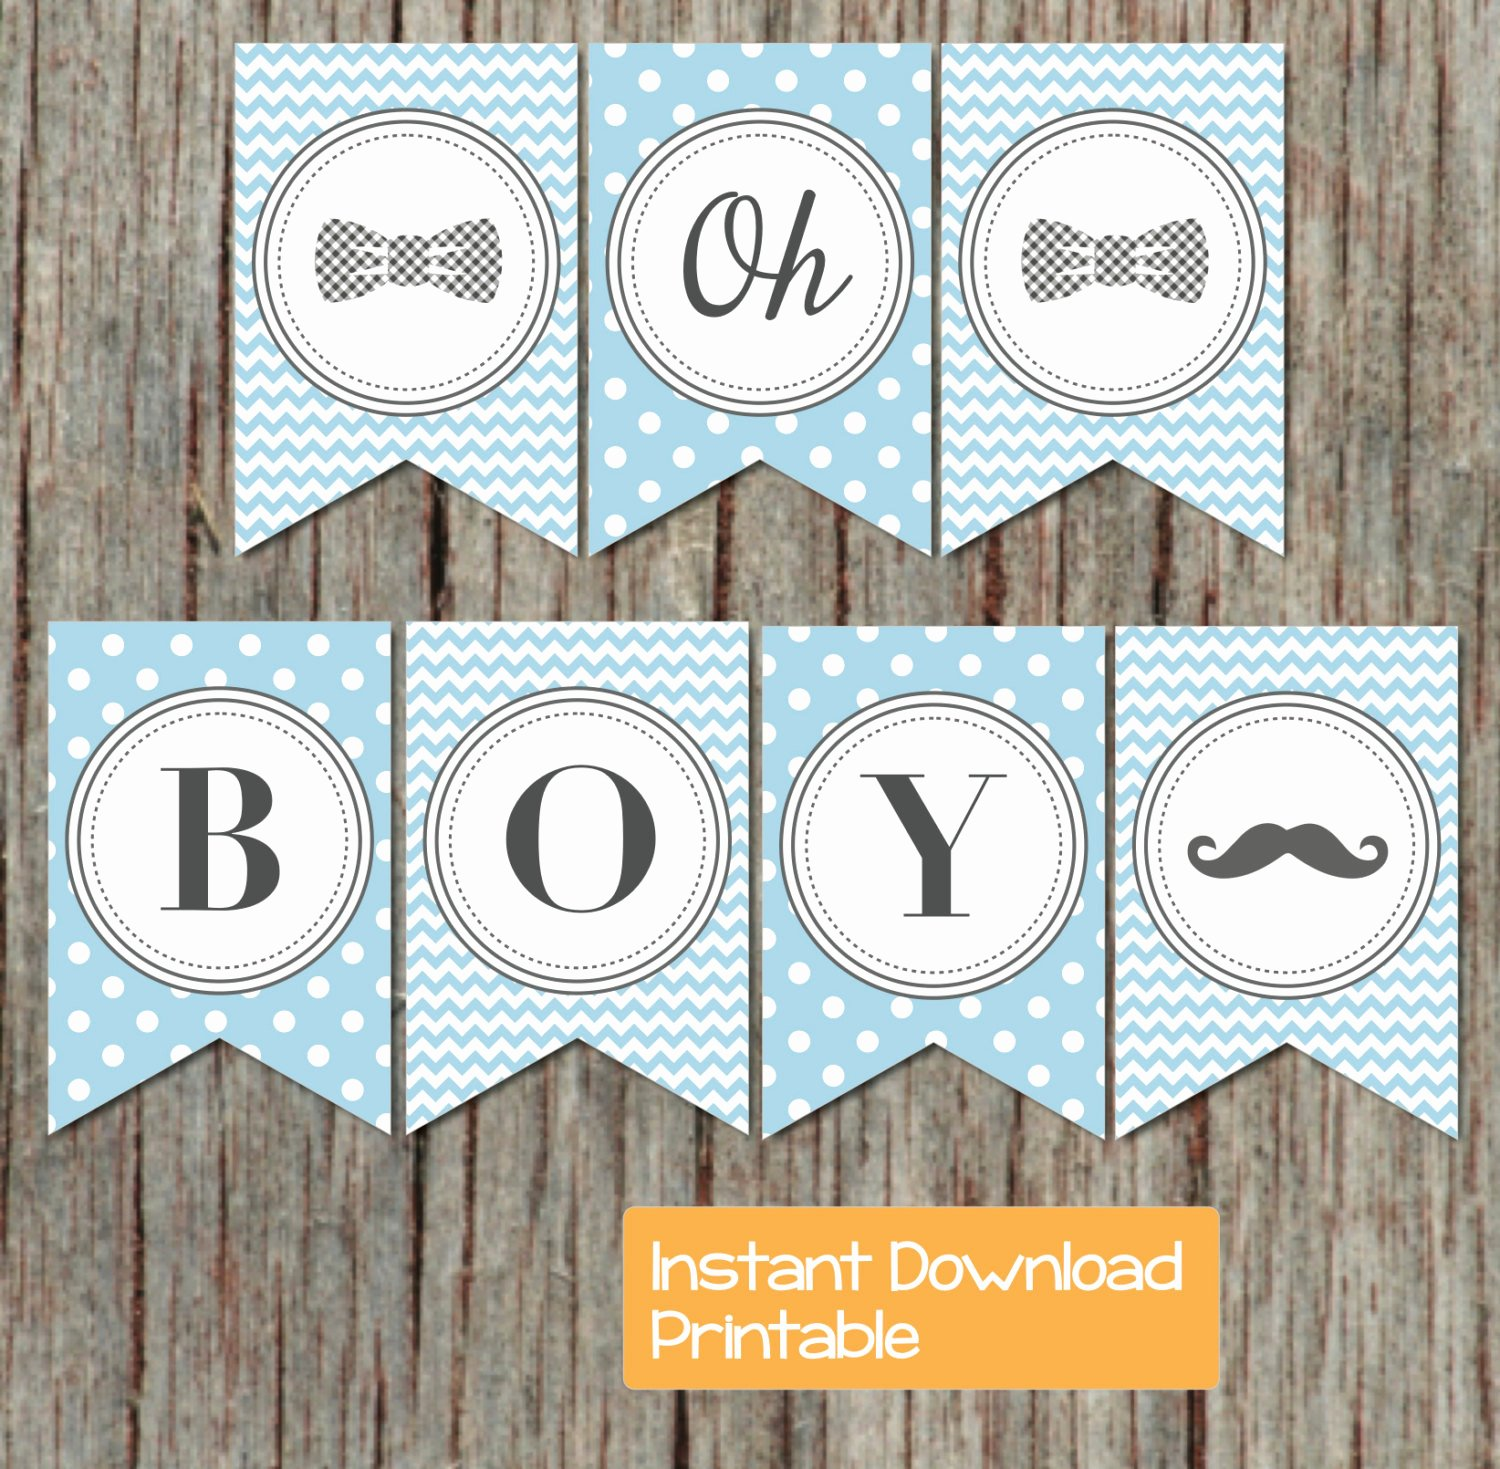 Baby Shower Banner Printable Lovely Boy Oh Boy Printable Baby Shower Banner Powder Blue Grey